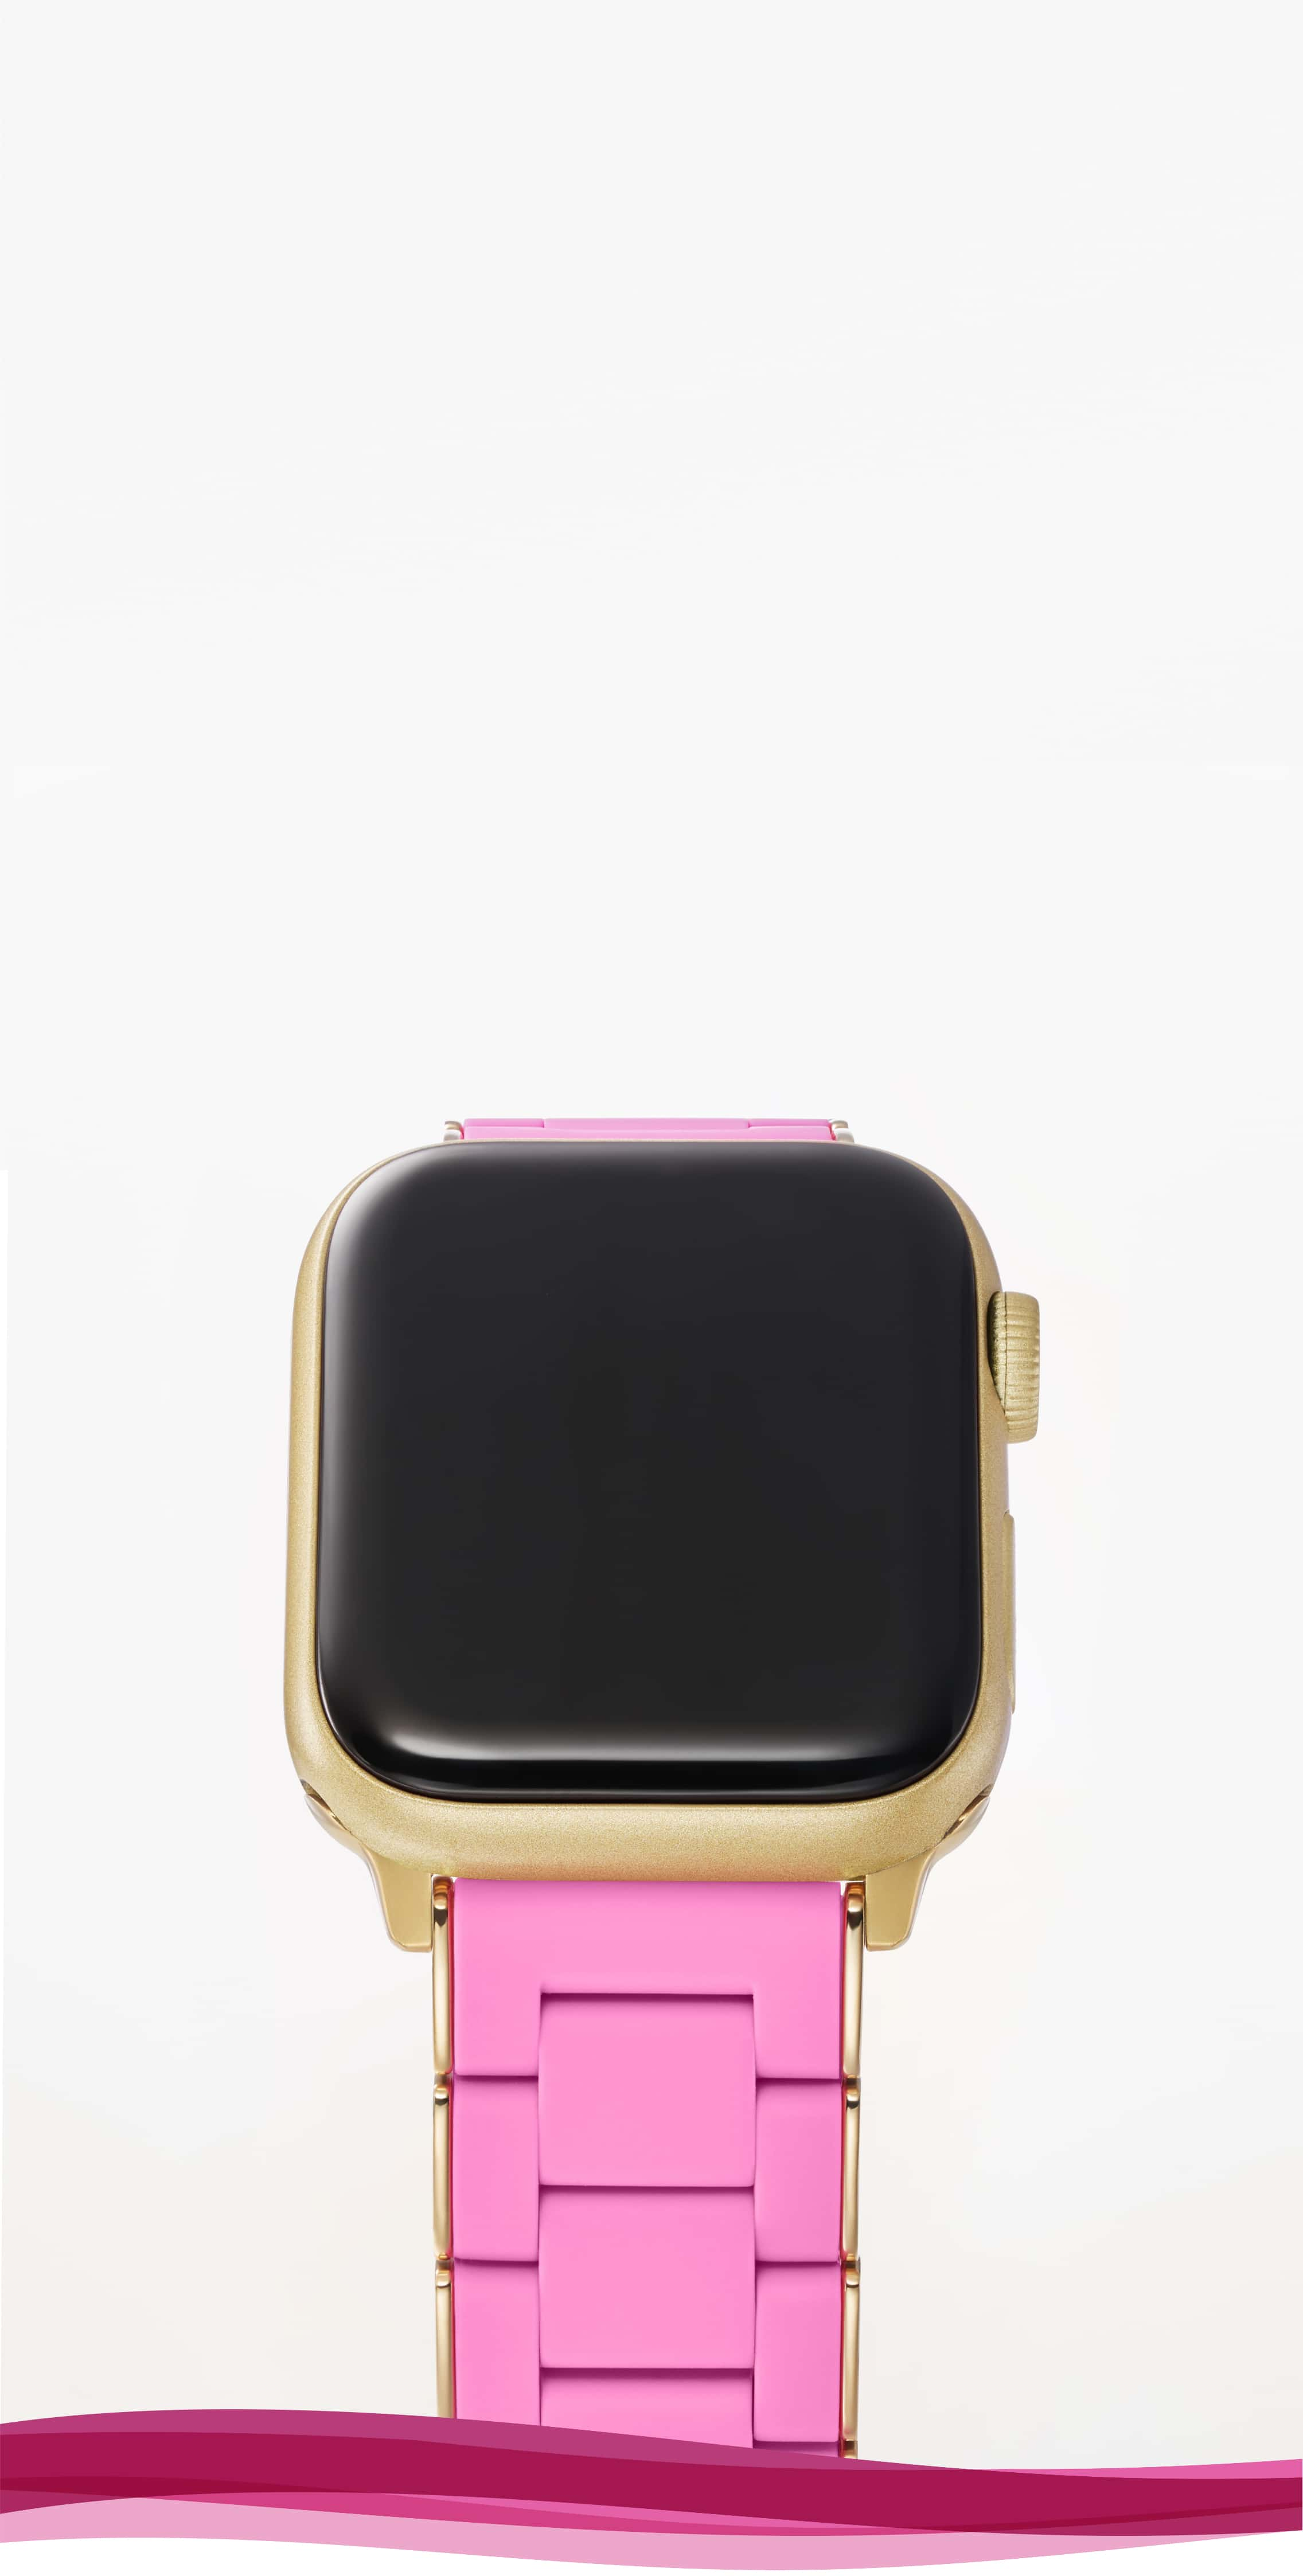 Silicone-wrapped band for Apple Watch® in Susan G. Komen's® signature pink colorway with gold-tone.